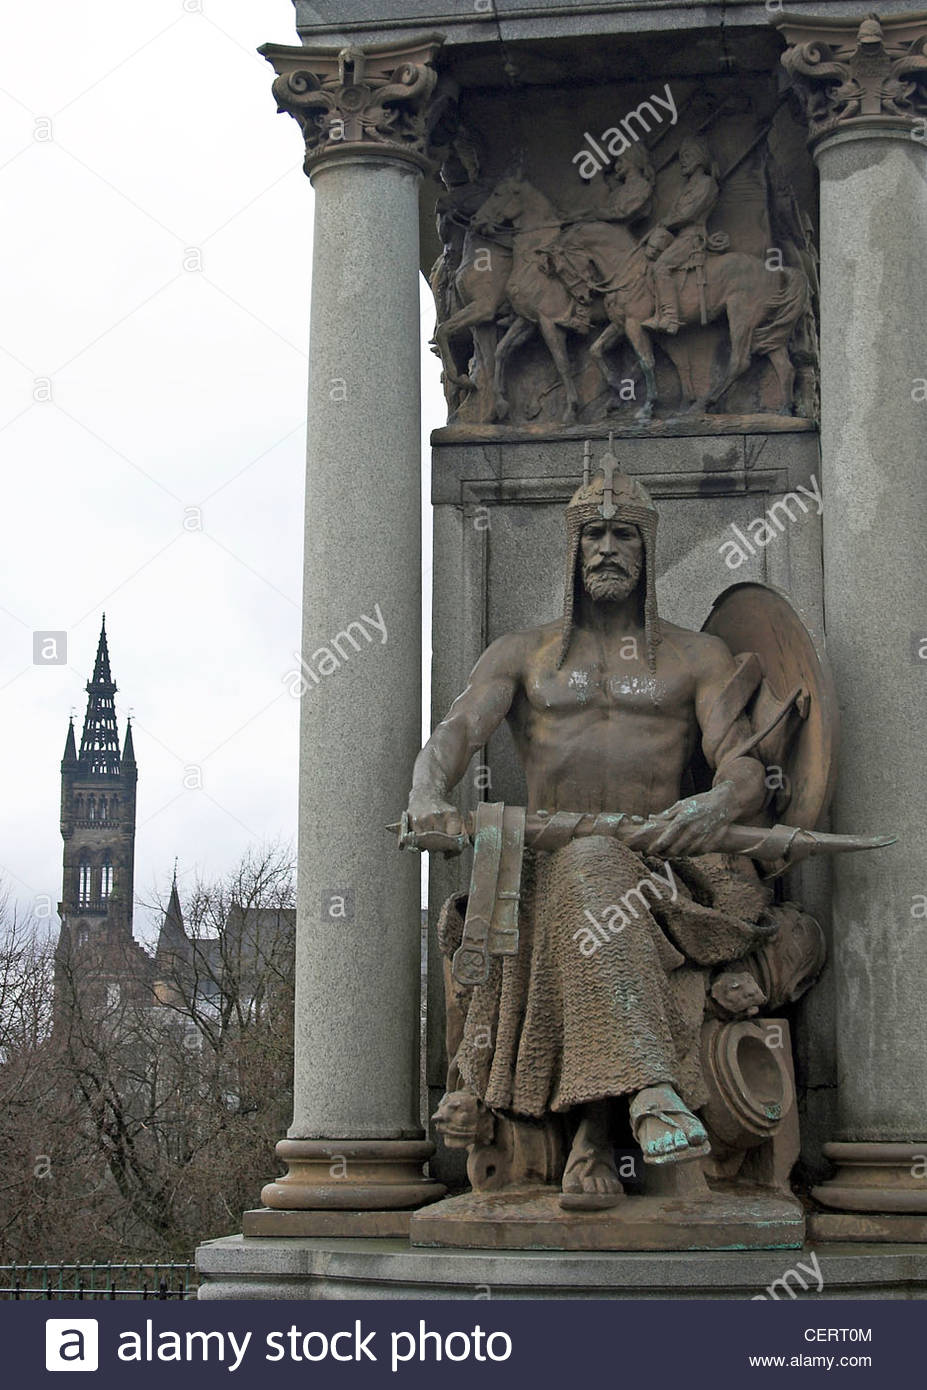 Field Marshall Lord Roberts Indian Mutiny Statue in Kelvingrove Park. - Stock Image